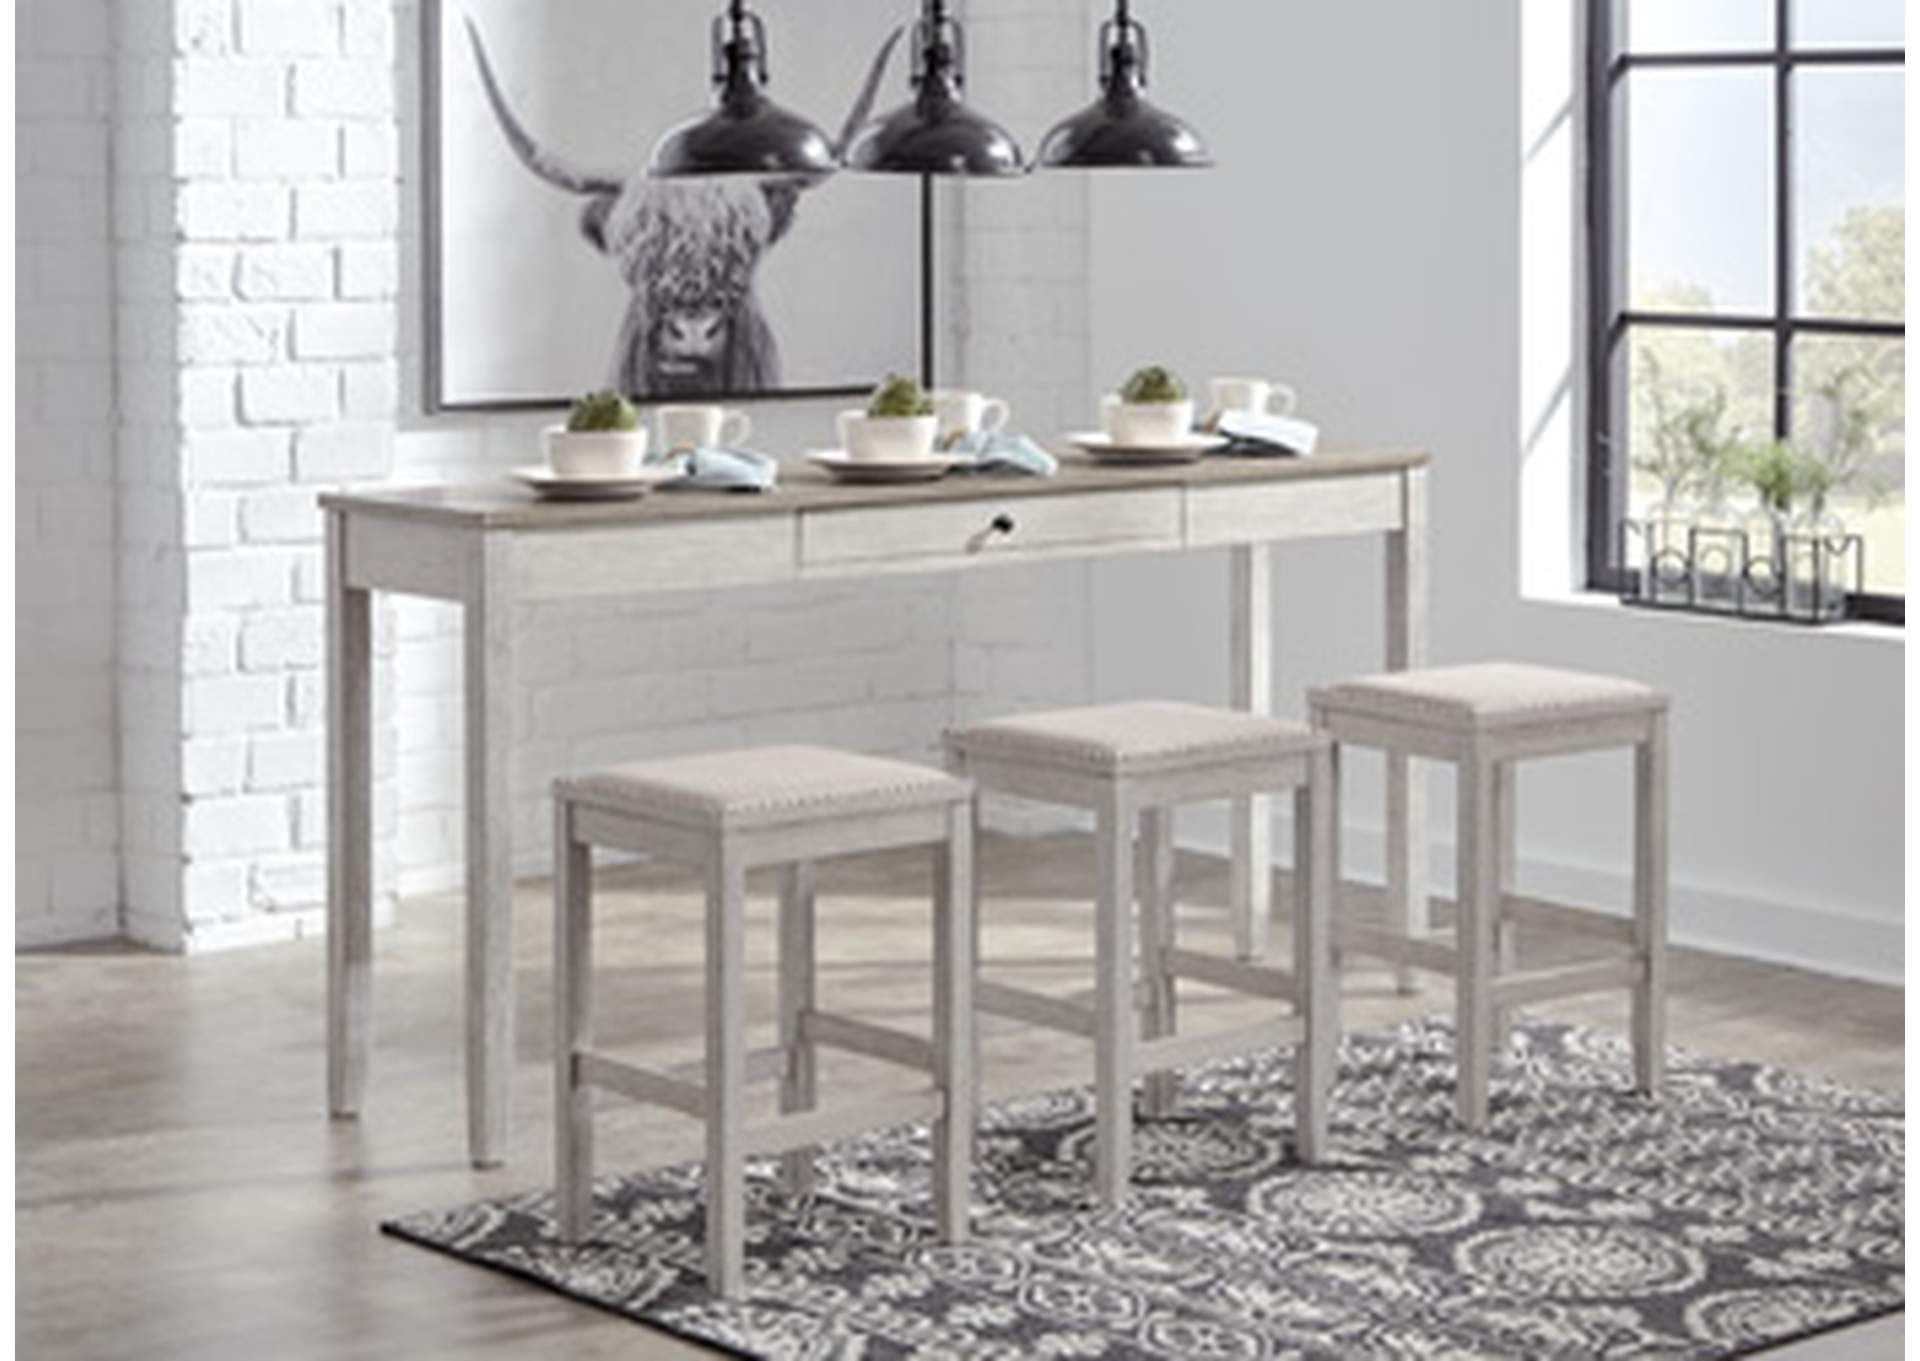 Skempton Counter Height Dining Room Table and Bar Stools (Set of 3)